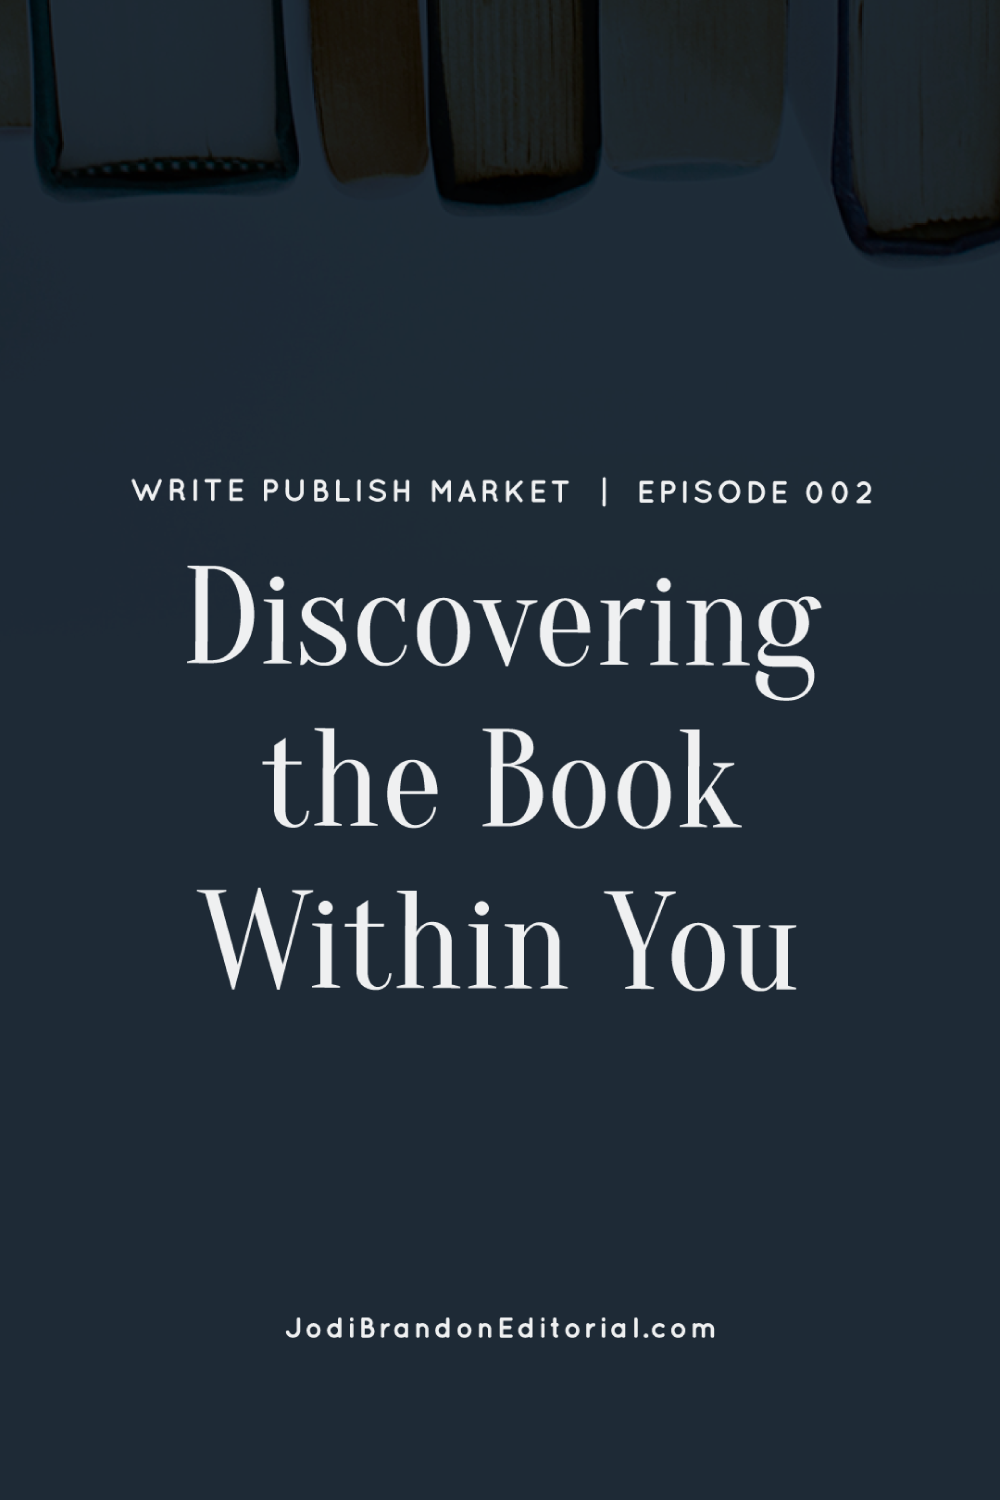 Today on the show Jodi talks about how author-entrepreneurs discover the book within them. Some have a passion for a topic that they can't resist writing about. For others, the idea comes from the questions they're asked repeatedly to showcase their expertise, methodology, or framework. With that idea needs to come a plan, which consists of the structure of the book (determined through researching similar book titles) and the contents (outline). Where author-entrepeneurs get hung up is getting started, due to one of these fears.  |  Write.Publish.Market Podcast  |  Jodi Brandon Editorial